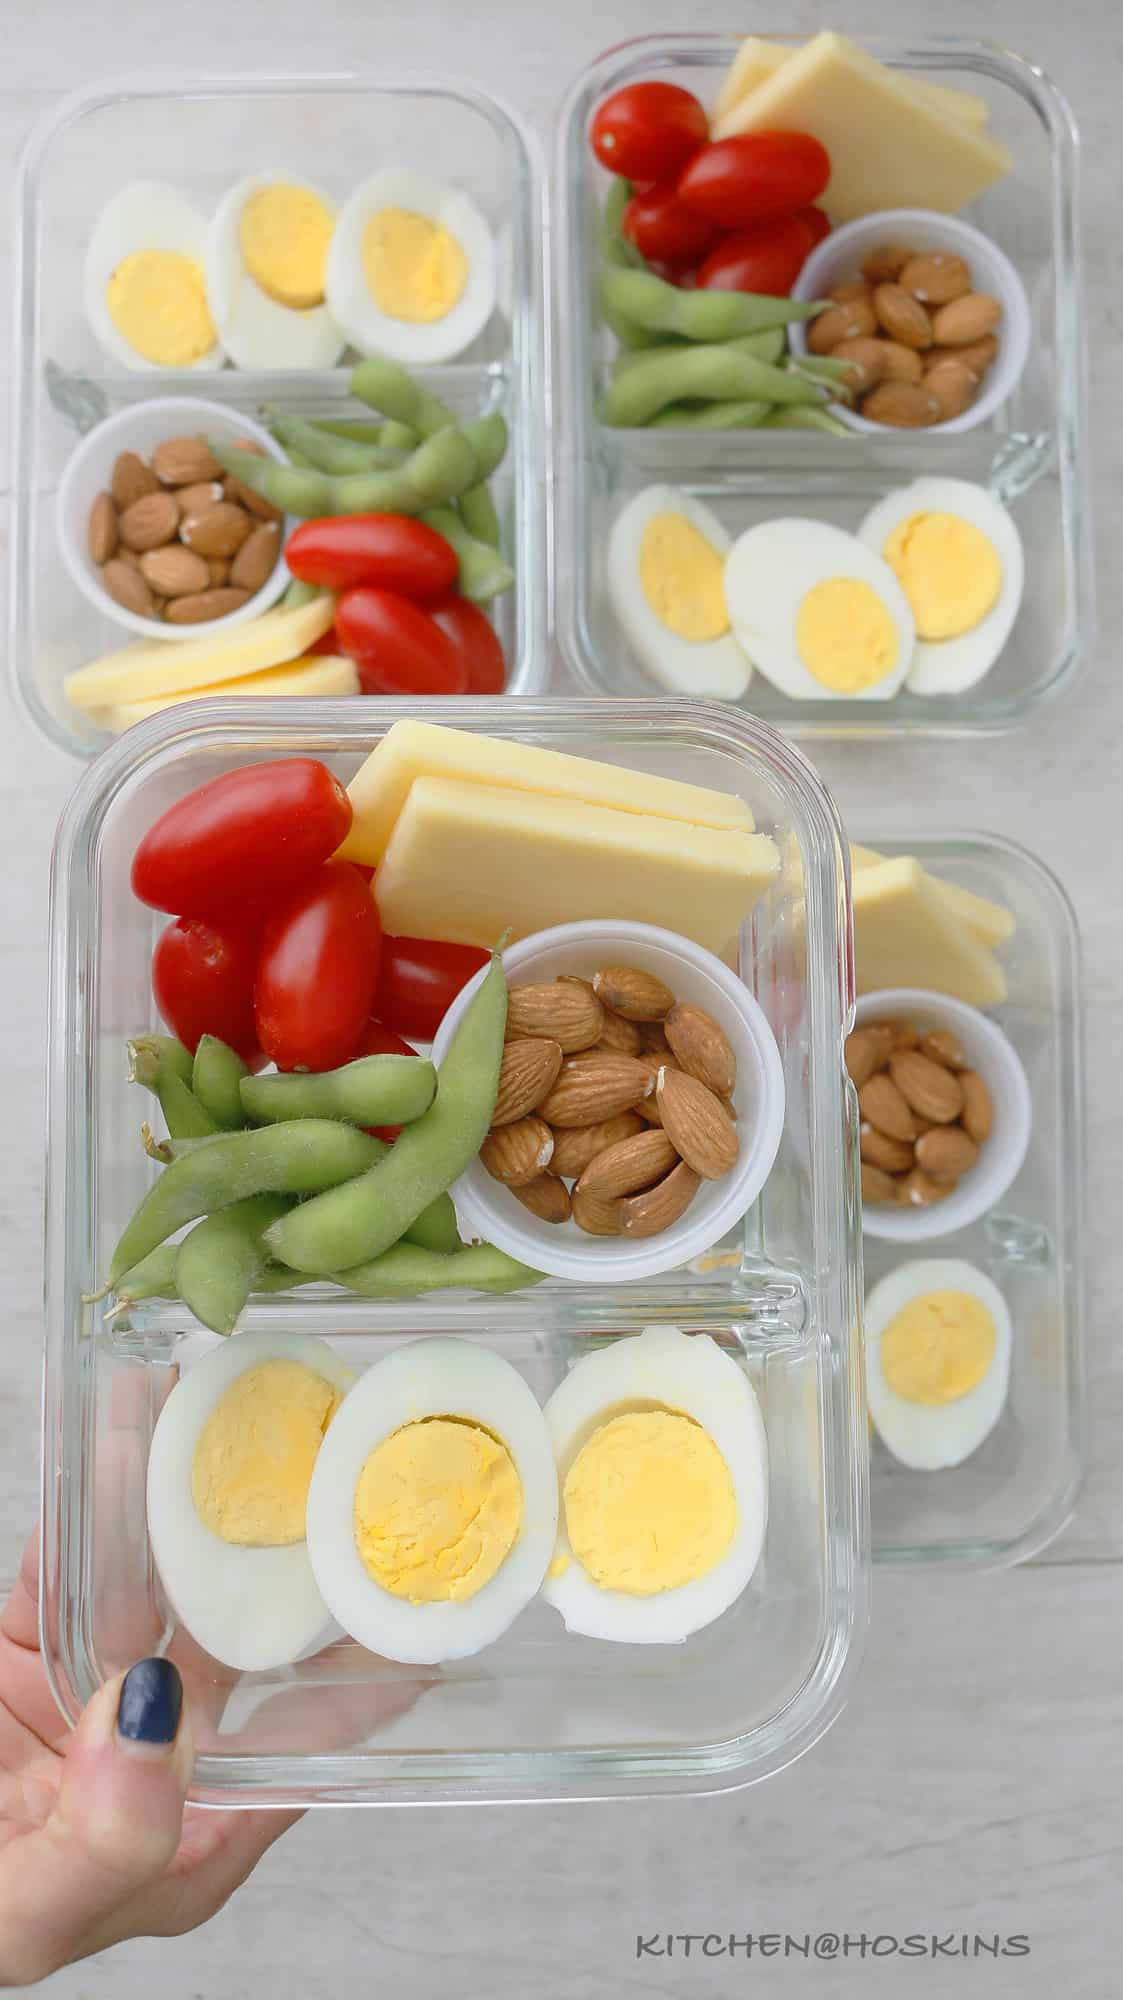 boiled eggs, cheese, almonds, edamame and tomatoes in bento box